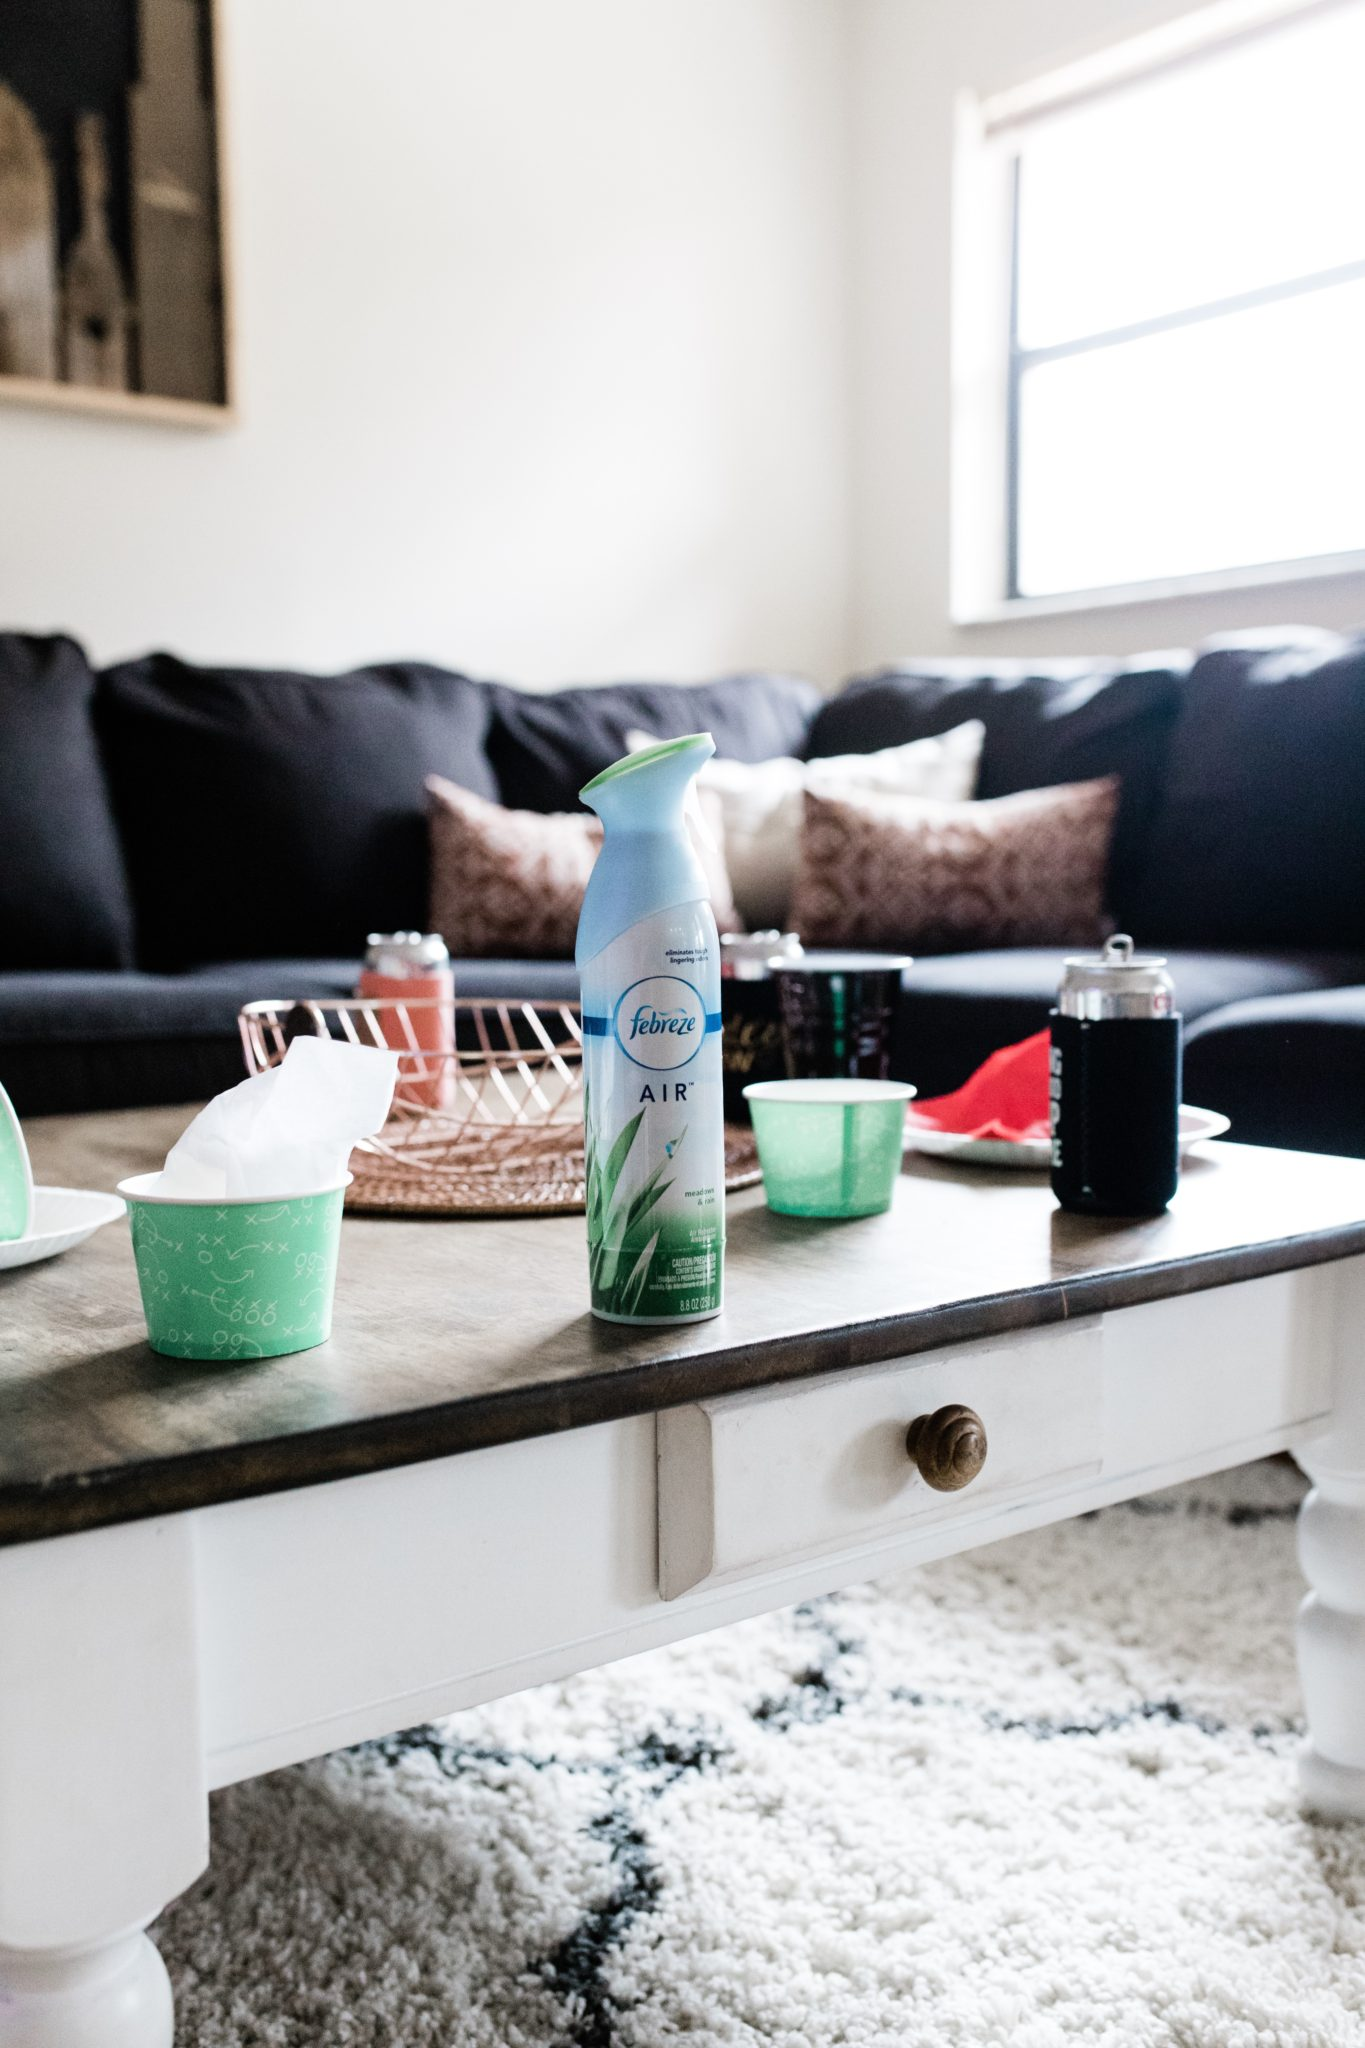 Mom Hacks for Hosting a Successful Super Bowl Party using Febreze AIR #ad #PartyPrepwithFebreze